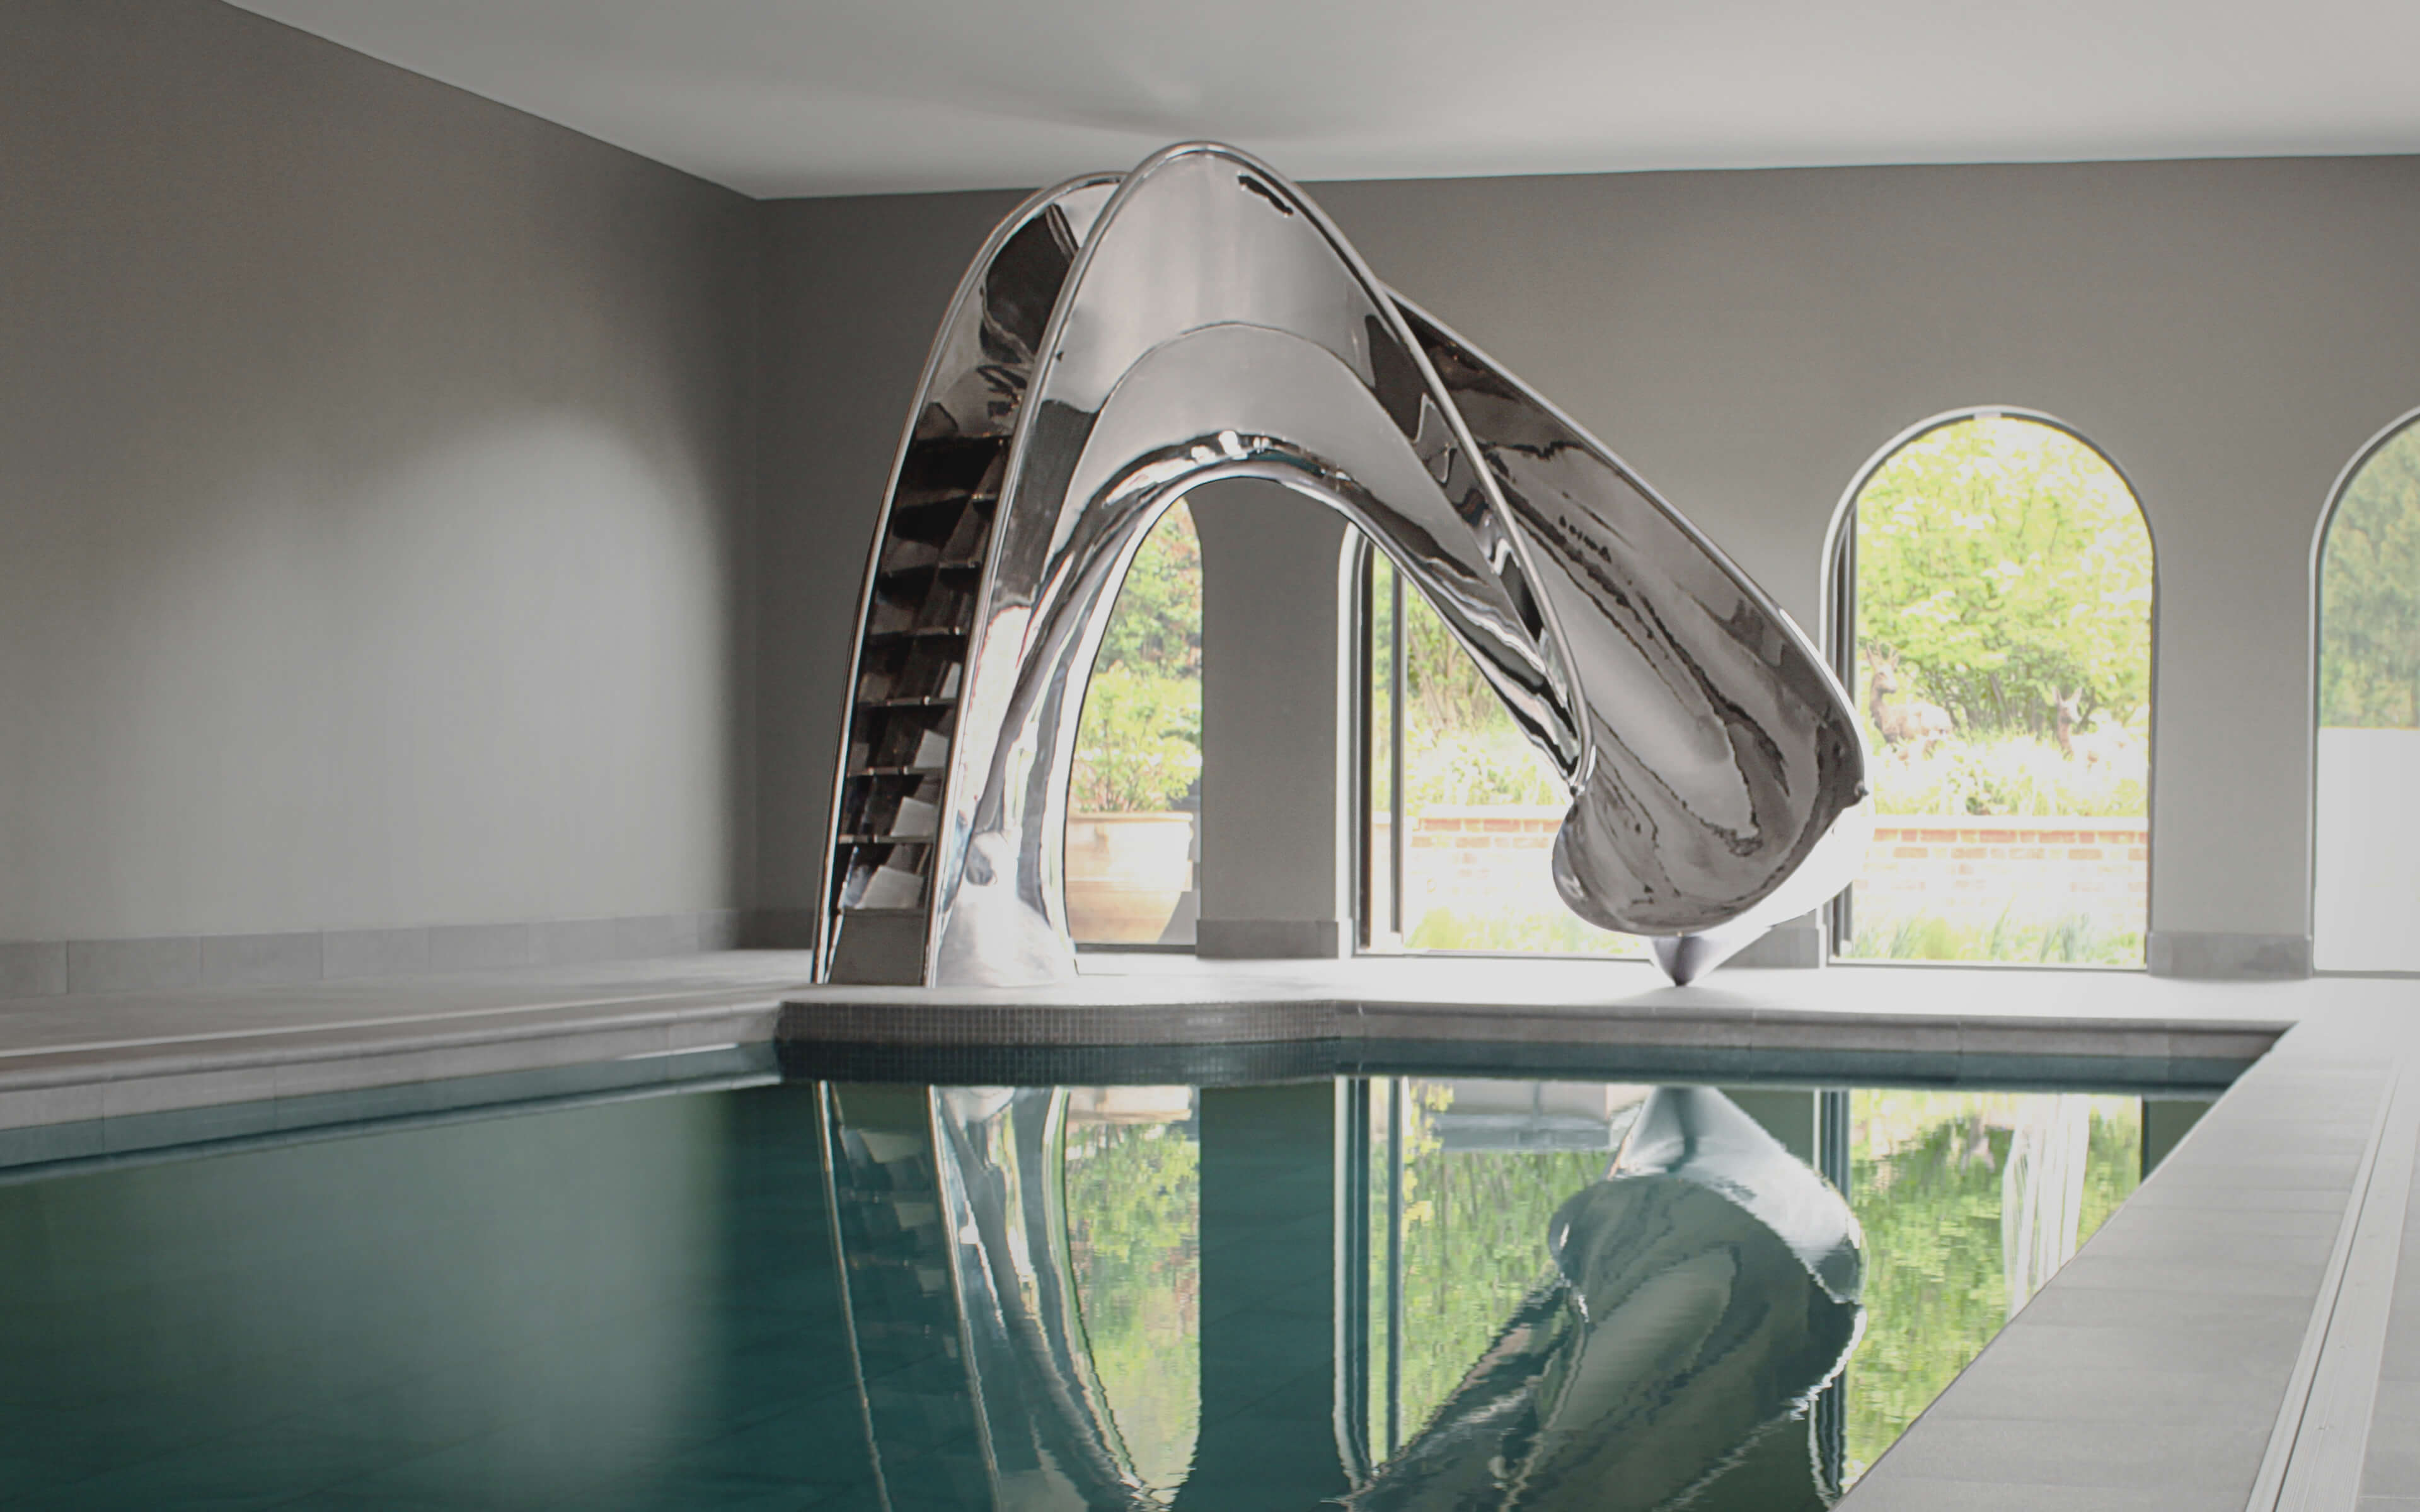 Mirror polished stainless steel pool slide in architectural pool pavilion.